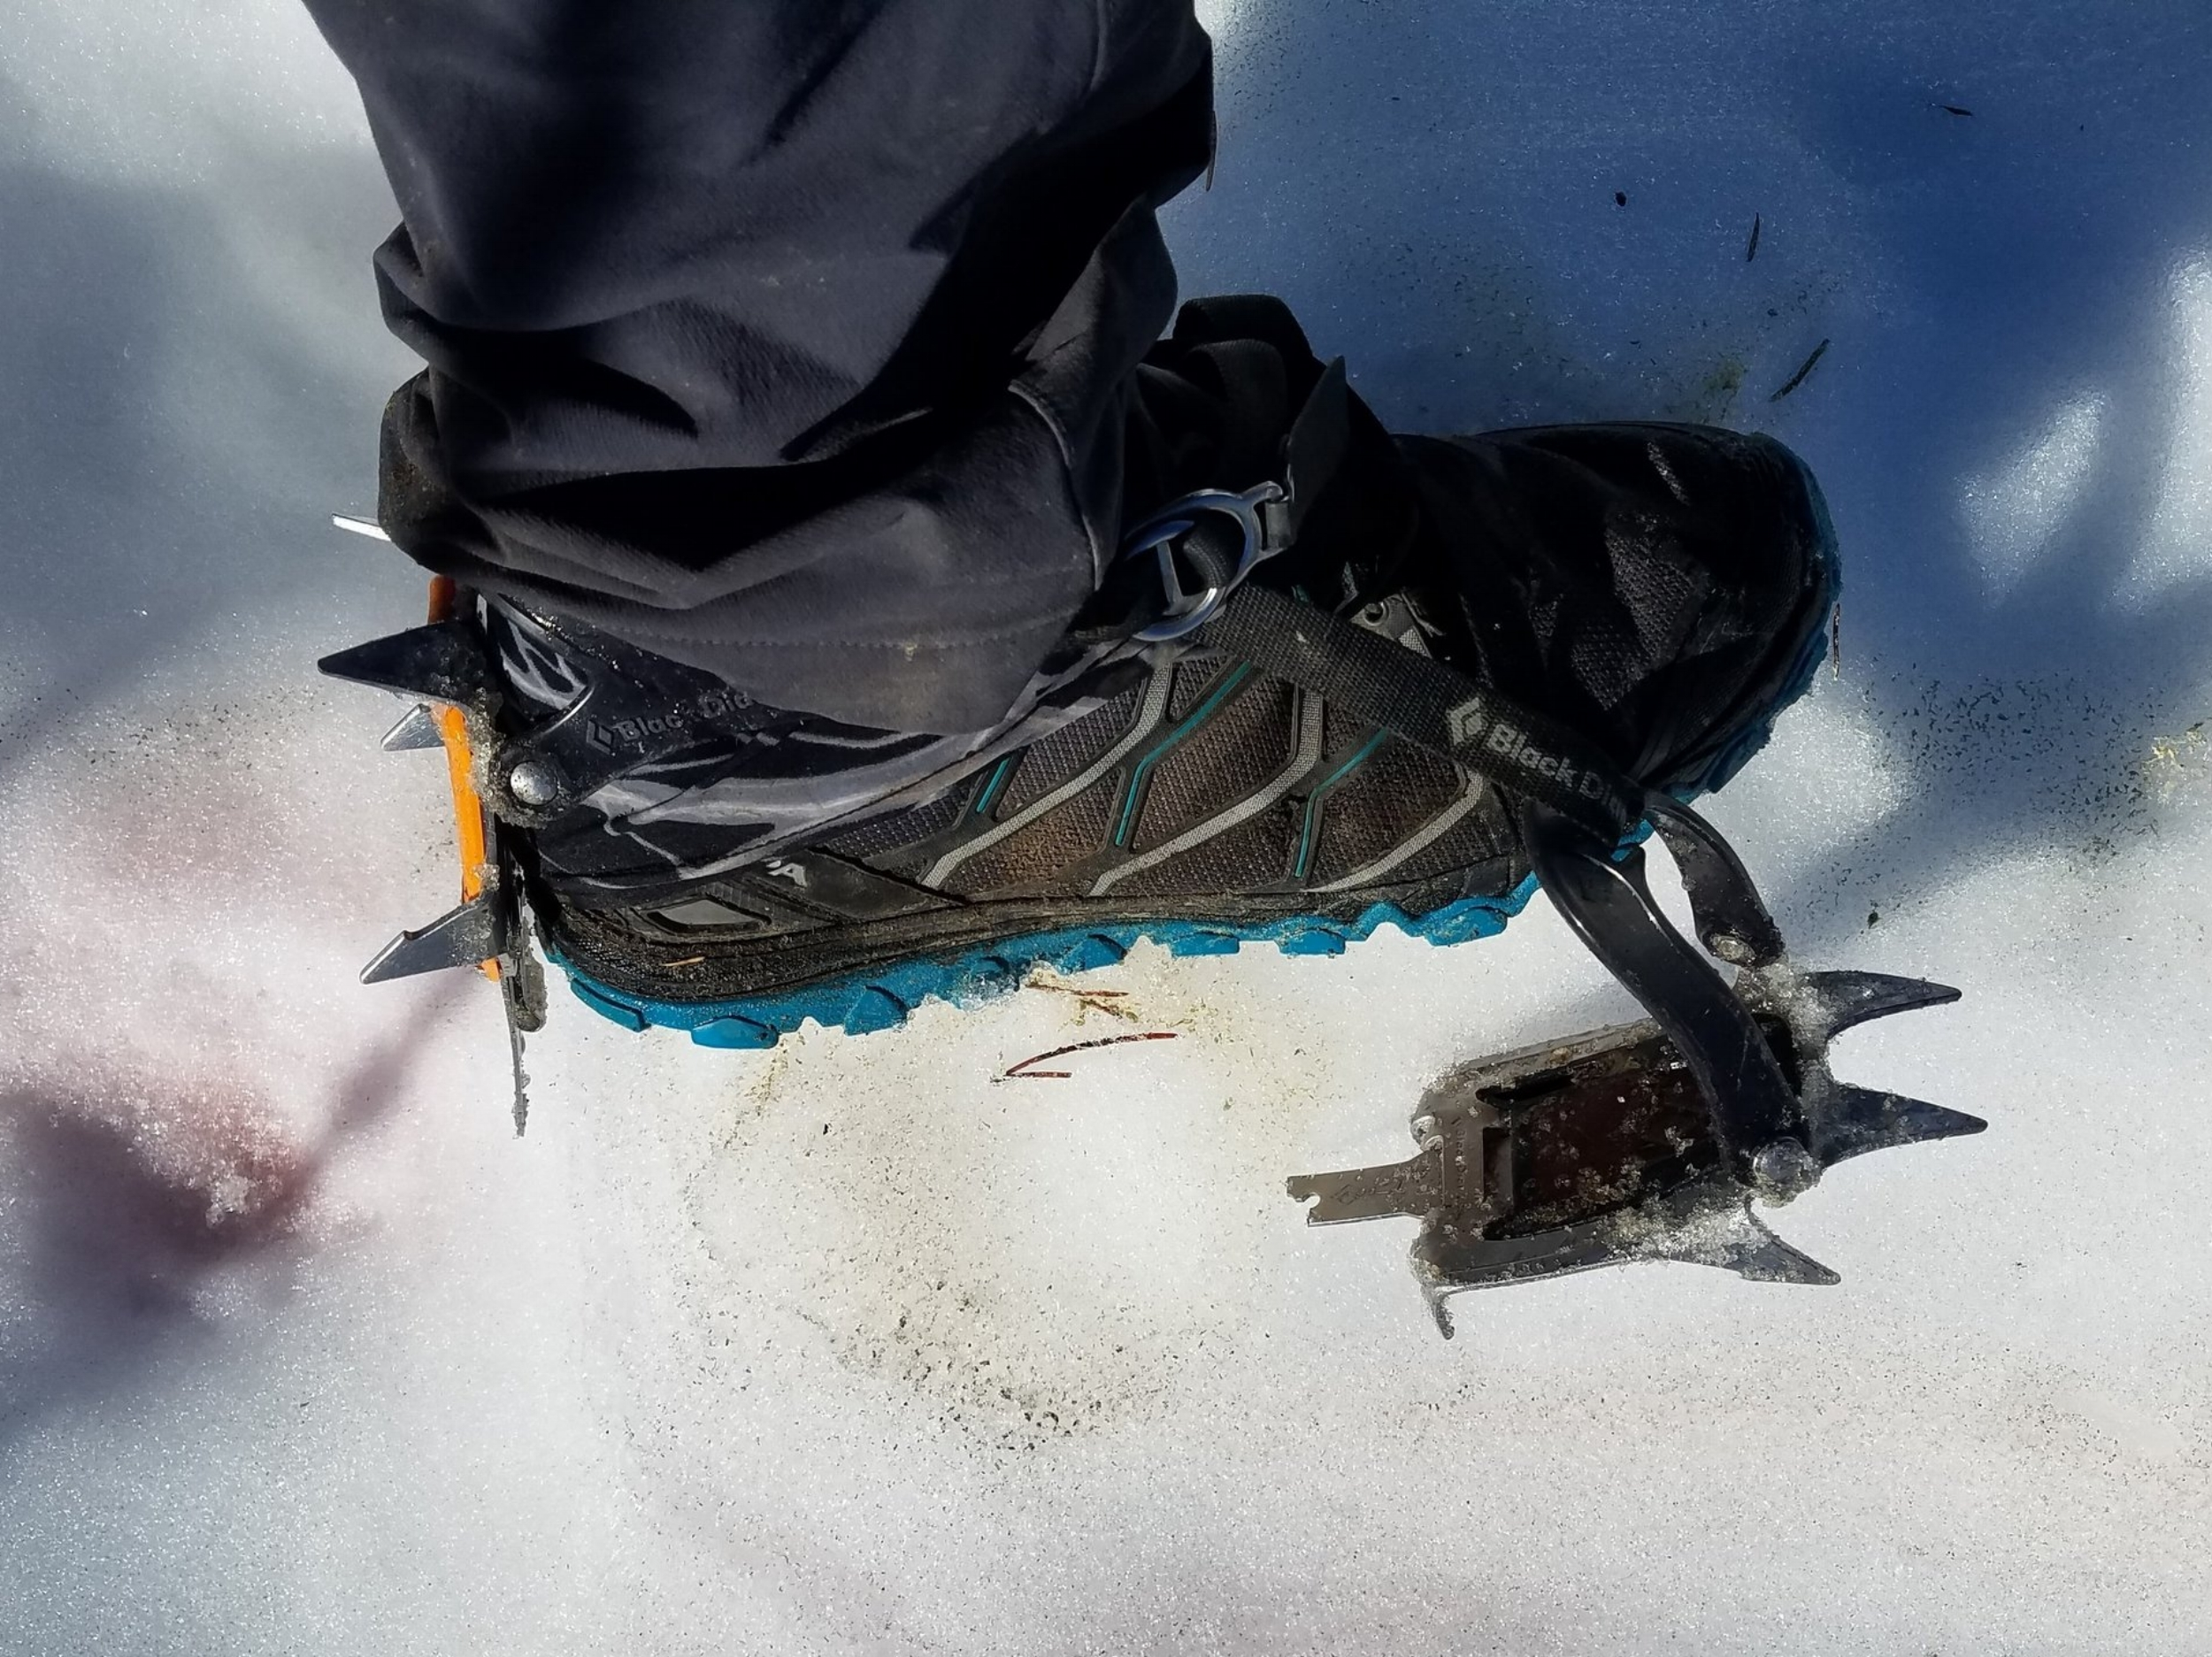 Trail-runners and crampons have an oil-and-watery kind of relationship...